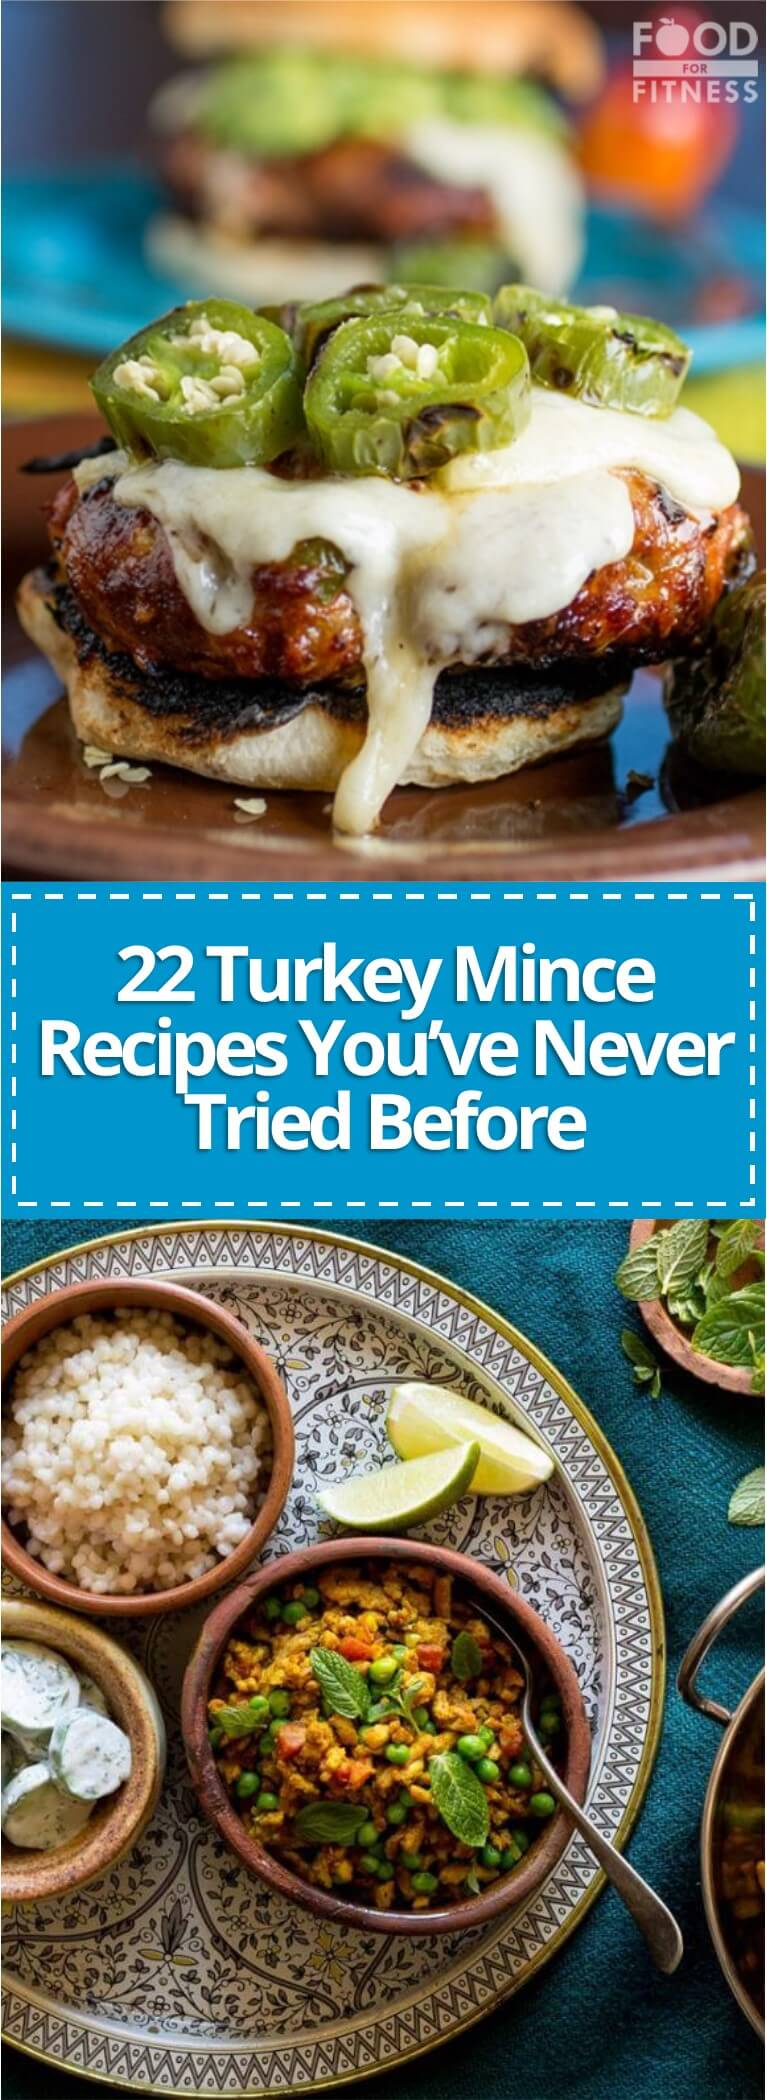 22 Turkey Mince Recipes You've Never Tried Before | #turkey #groundturkey #mince